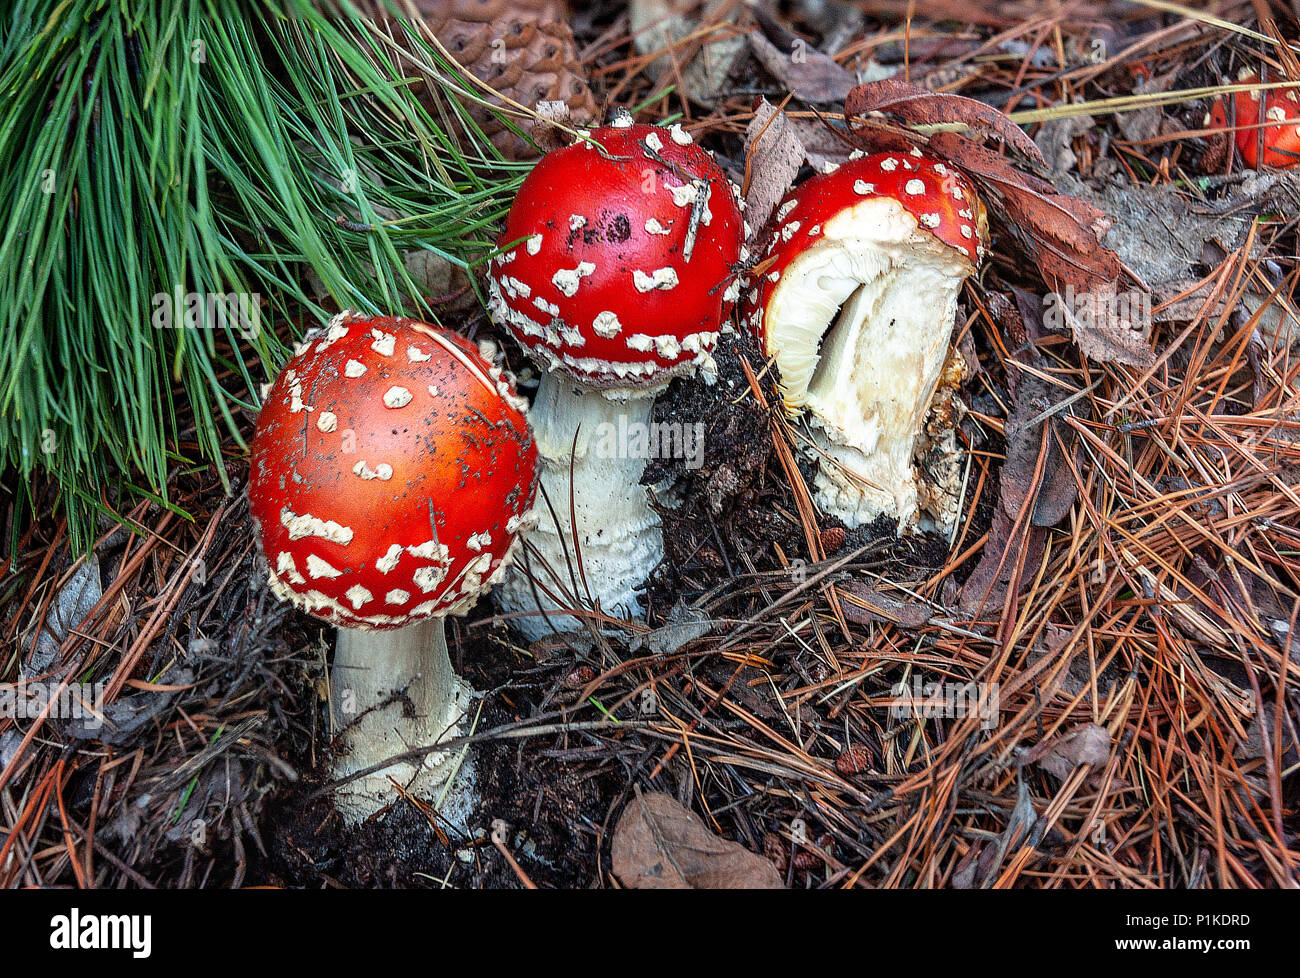 POISONOUS MUSHROOM. Poisonous mushroom with brightly red color cap and white spots flake grows among pine trees in a forest. Stock Photo